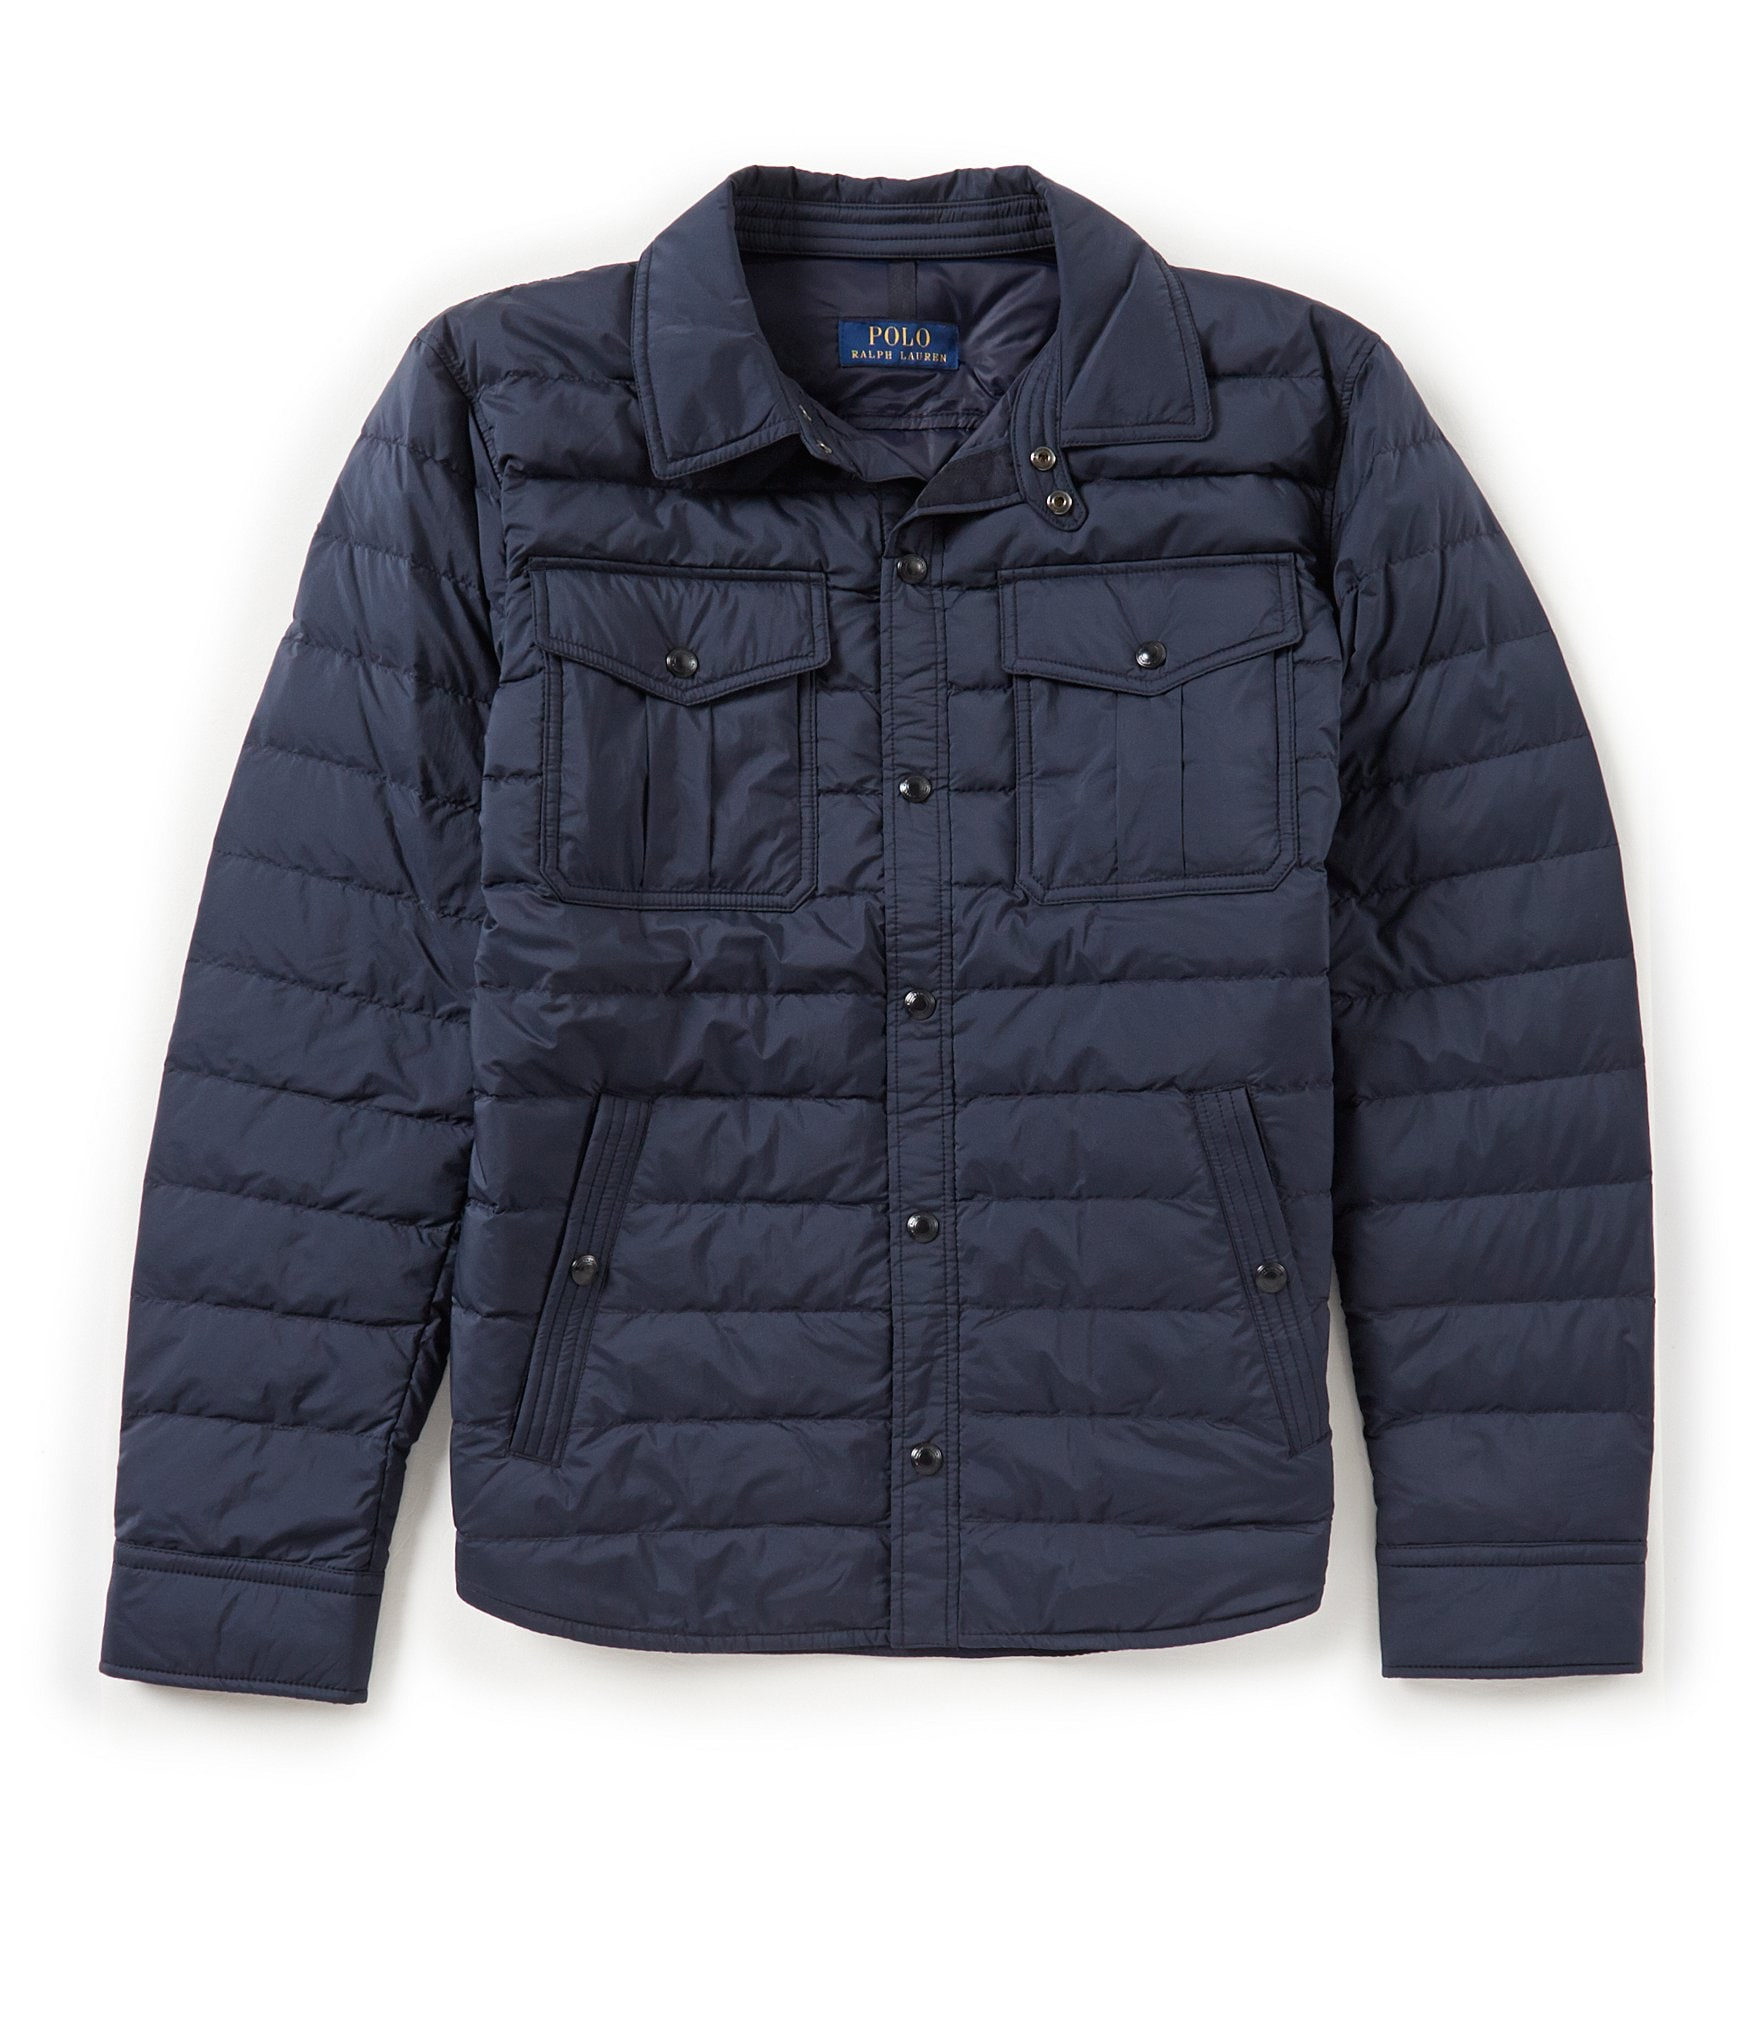 polo ralph lauren quilted down shirt jacket dillards